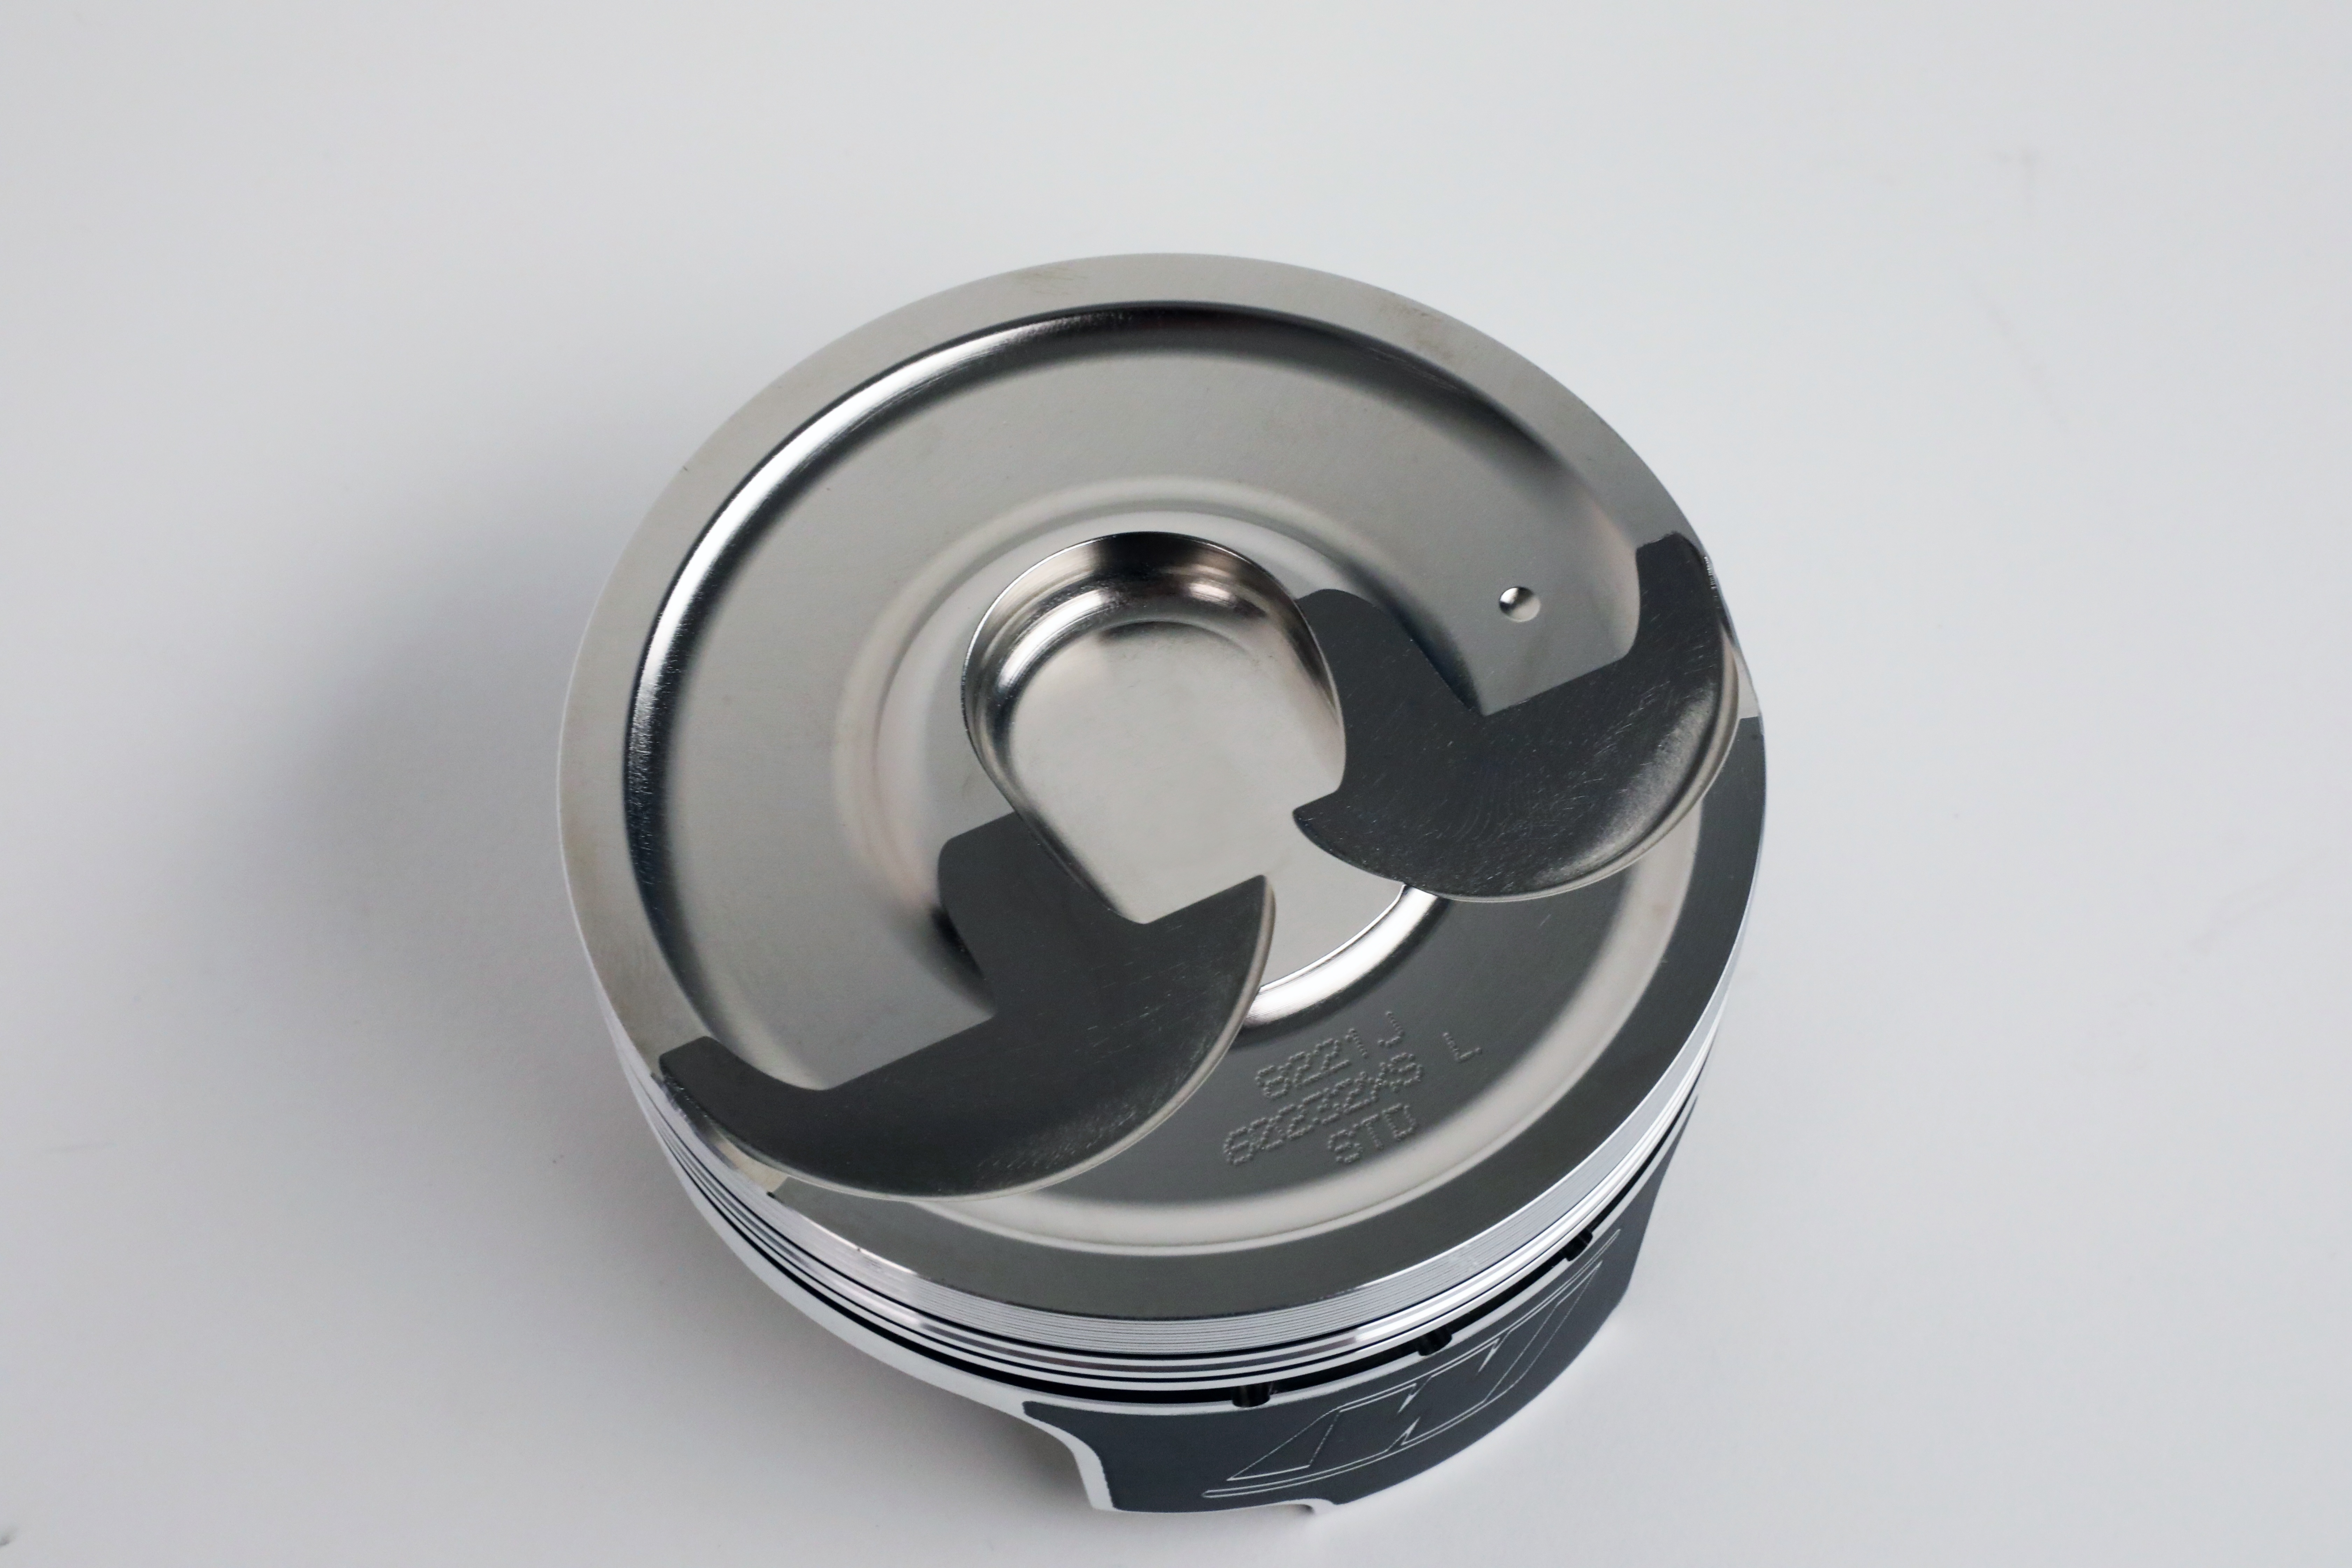 001-wiseco-lt-l83-l98-direct-injection-pistons